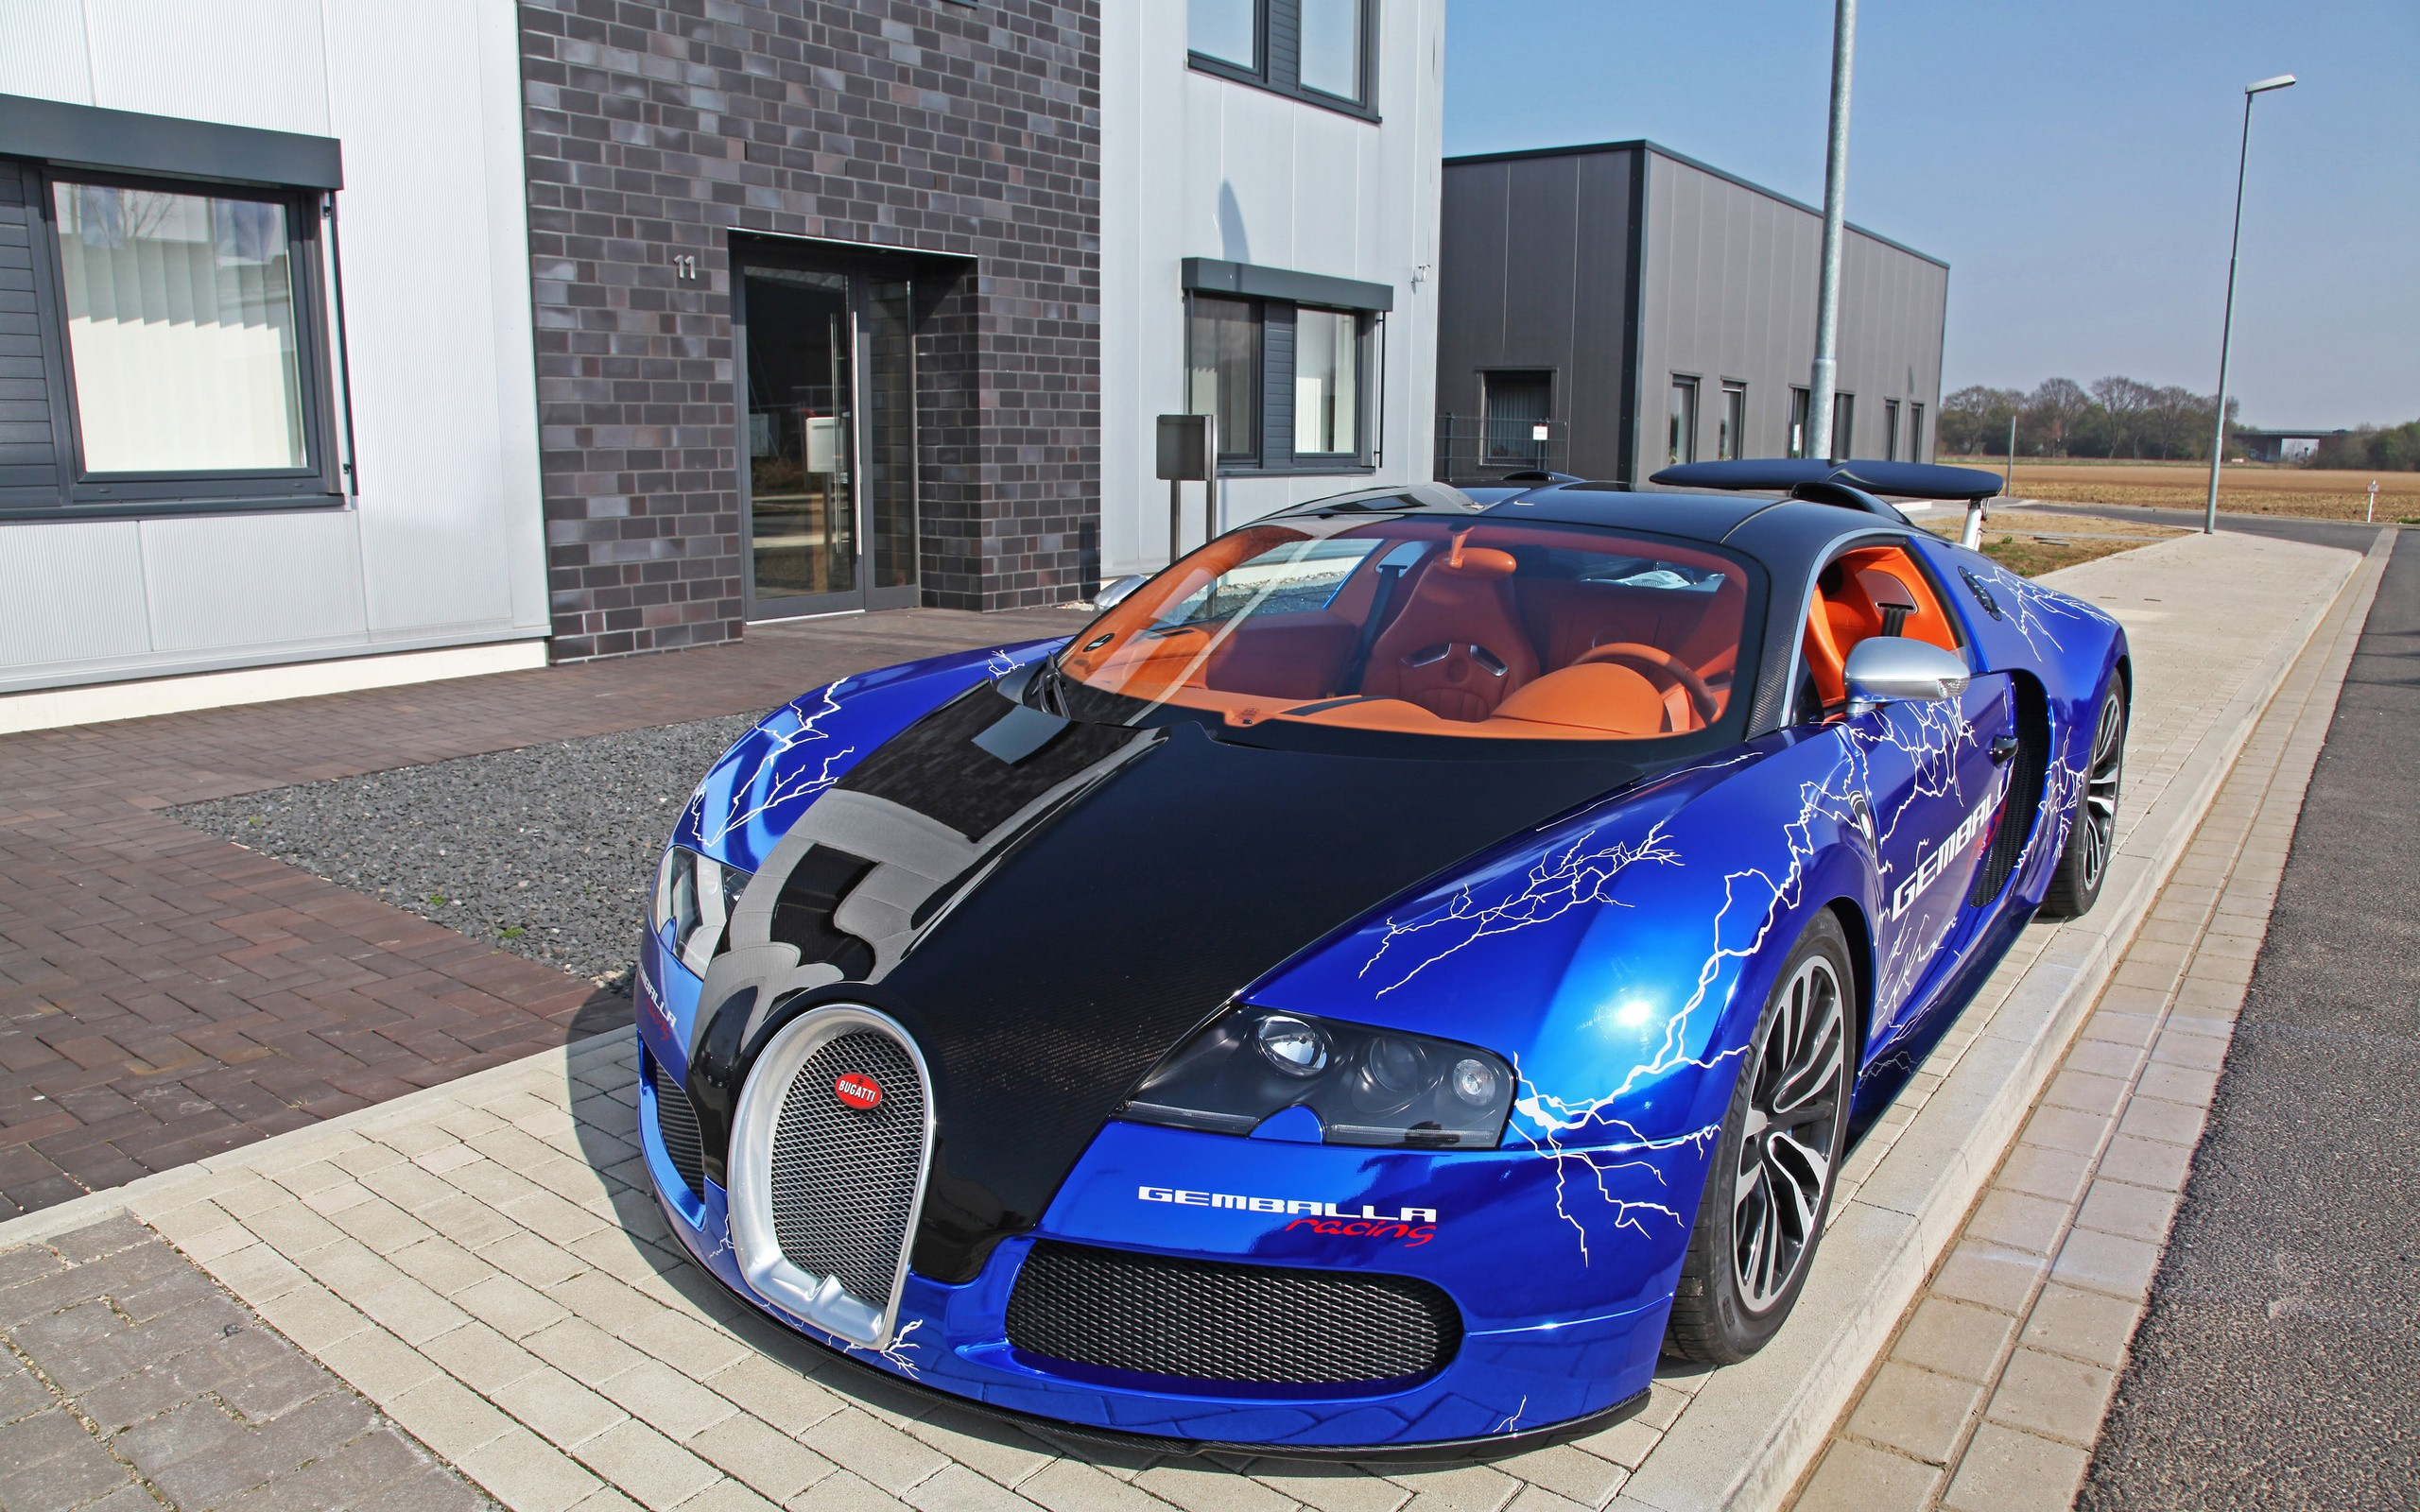 216 Bugatti Veyron Hd Wallpapers Background Images Wallpaper Abyss